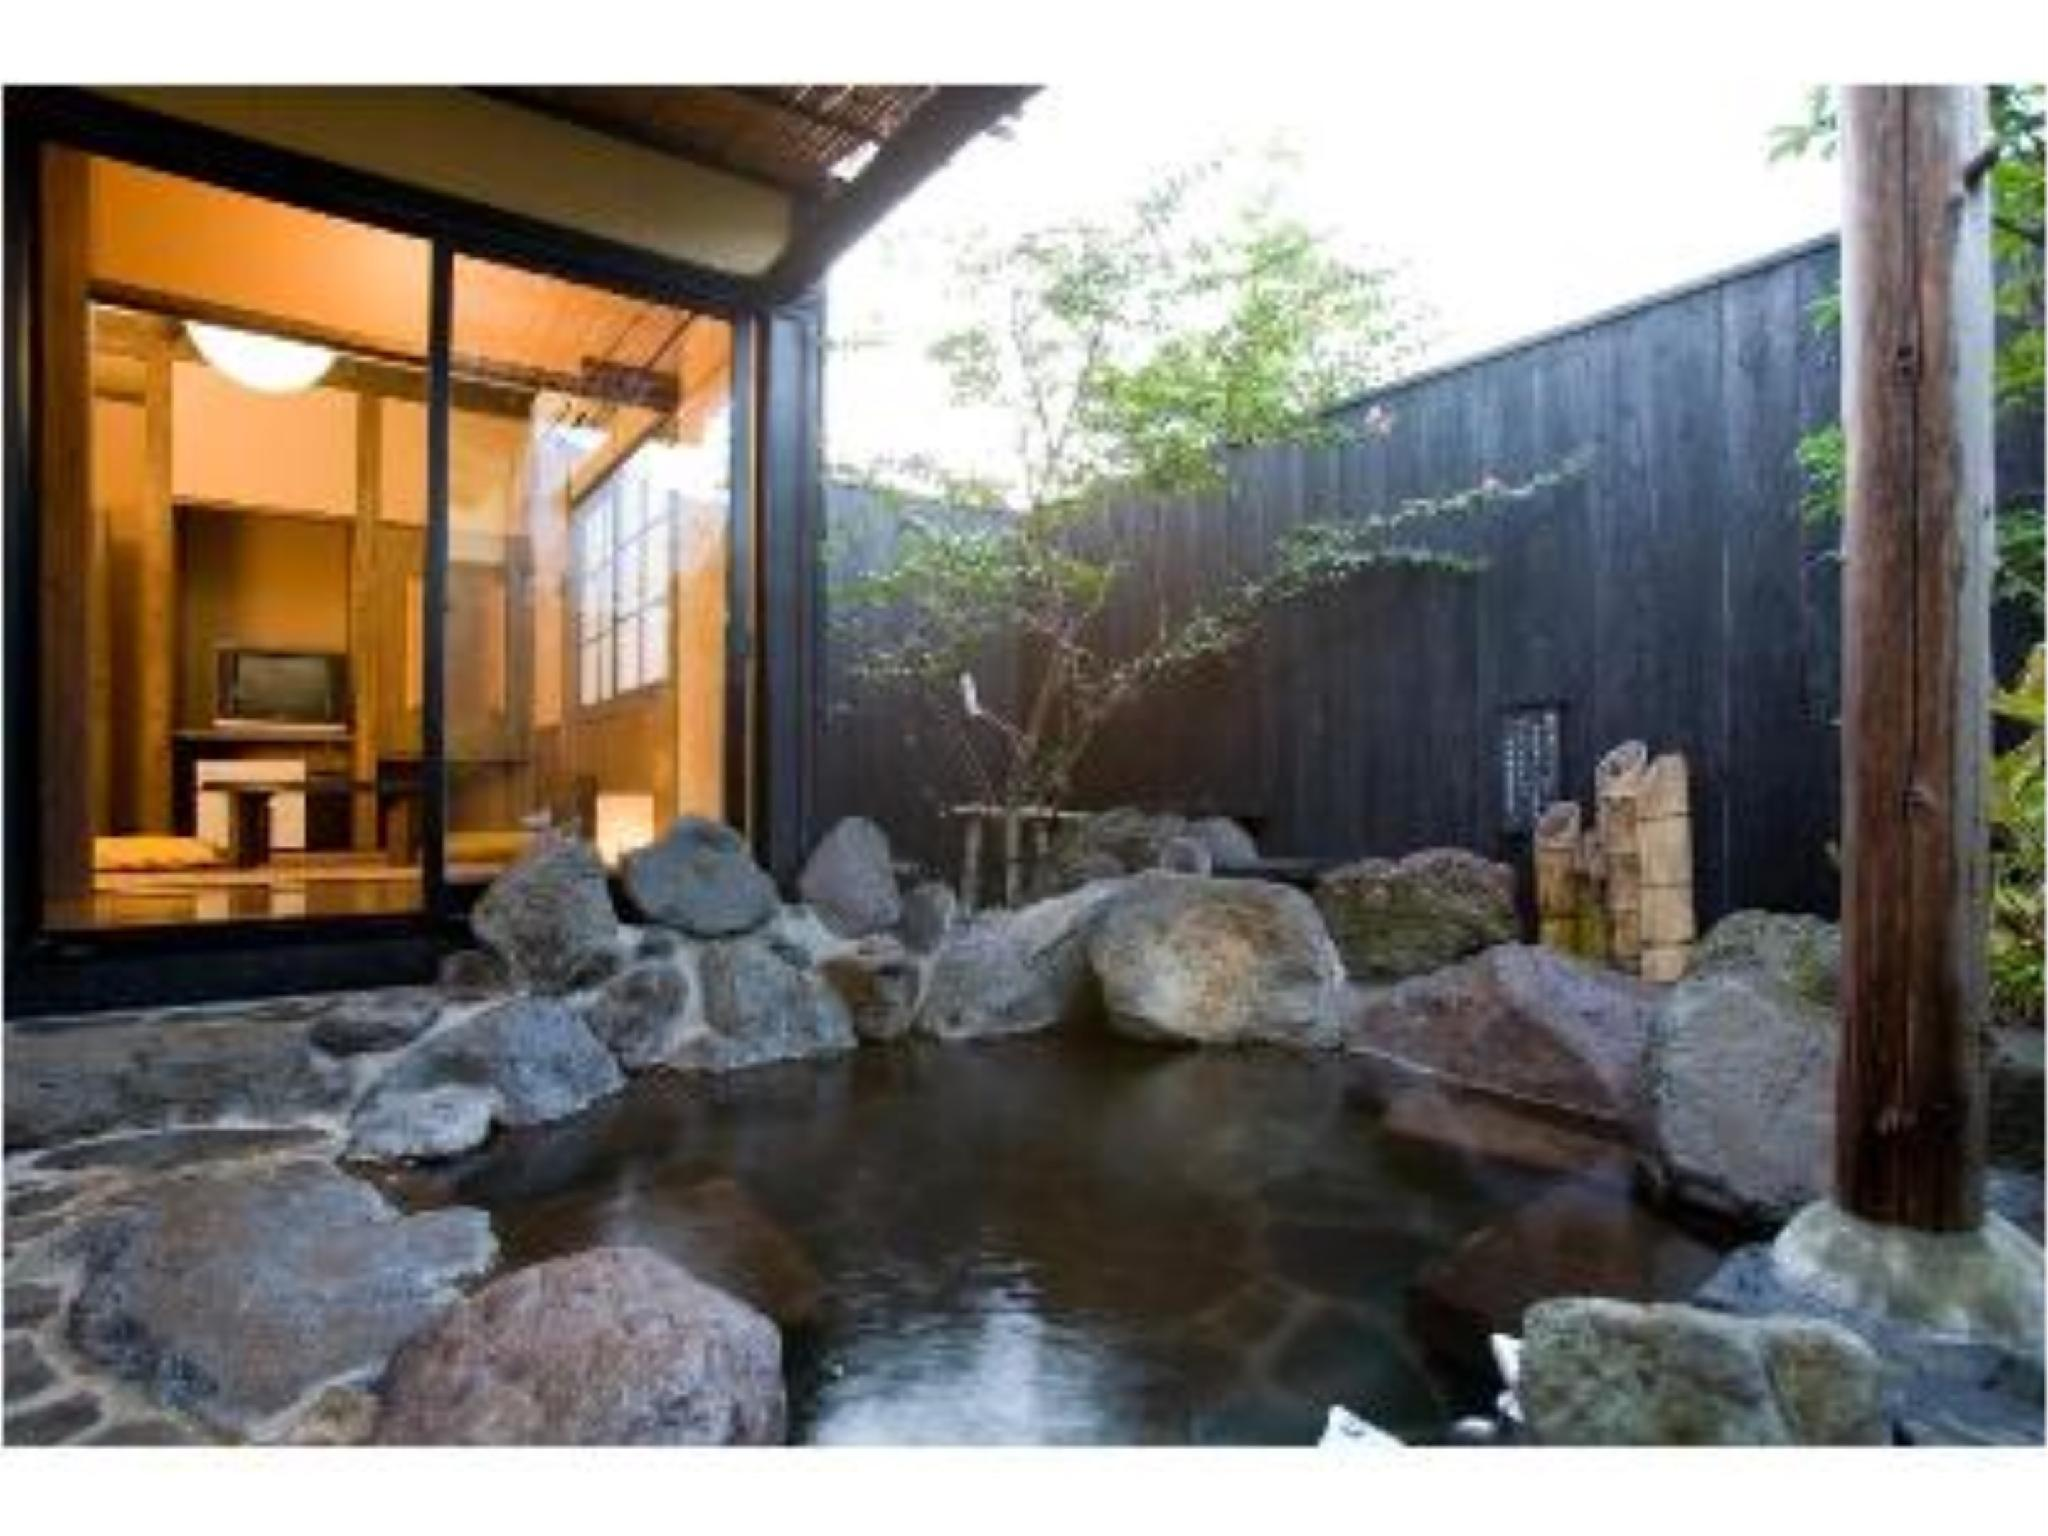 다다미 객실(별채/노천탕) (Detached Japanese-style Room with Open-air Rock Bath)